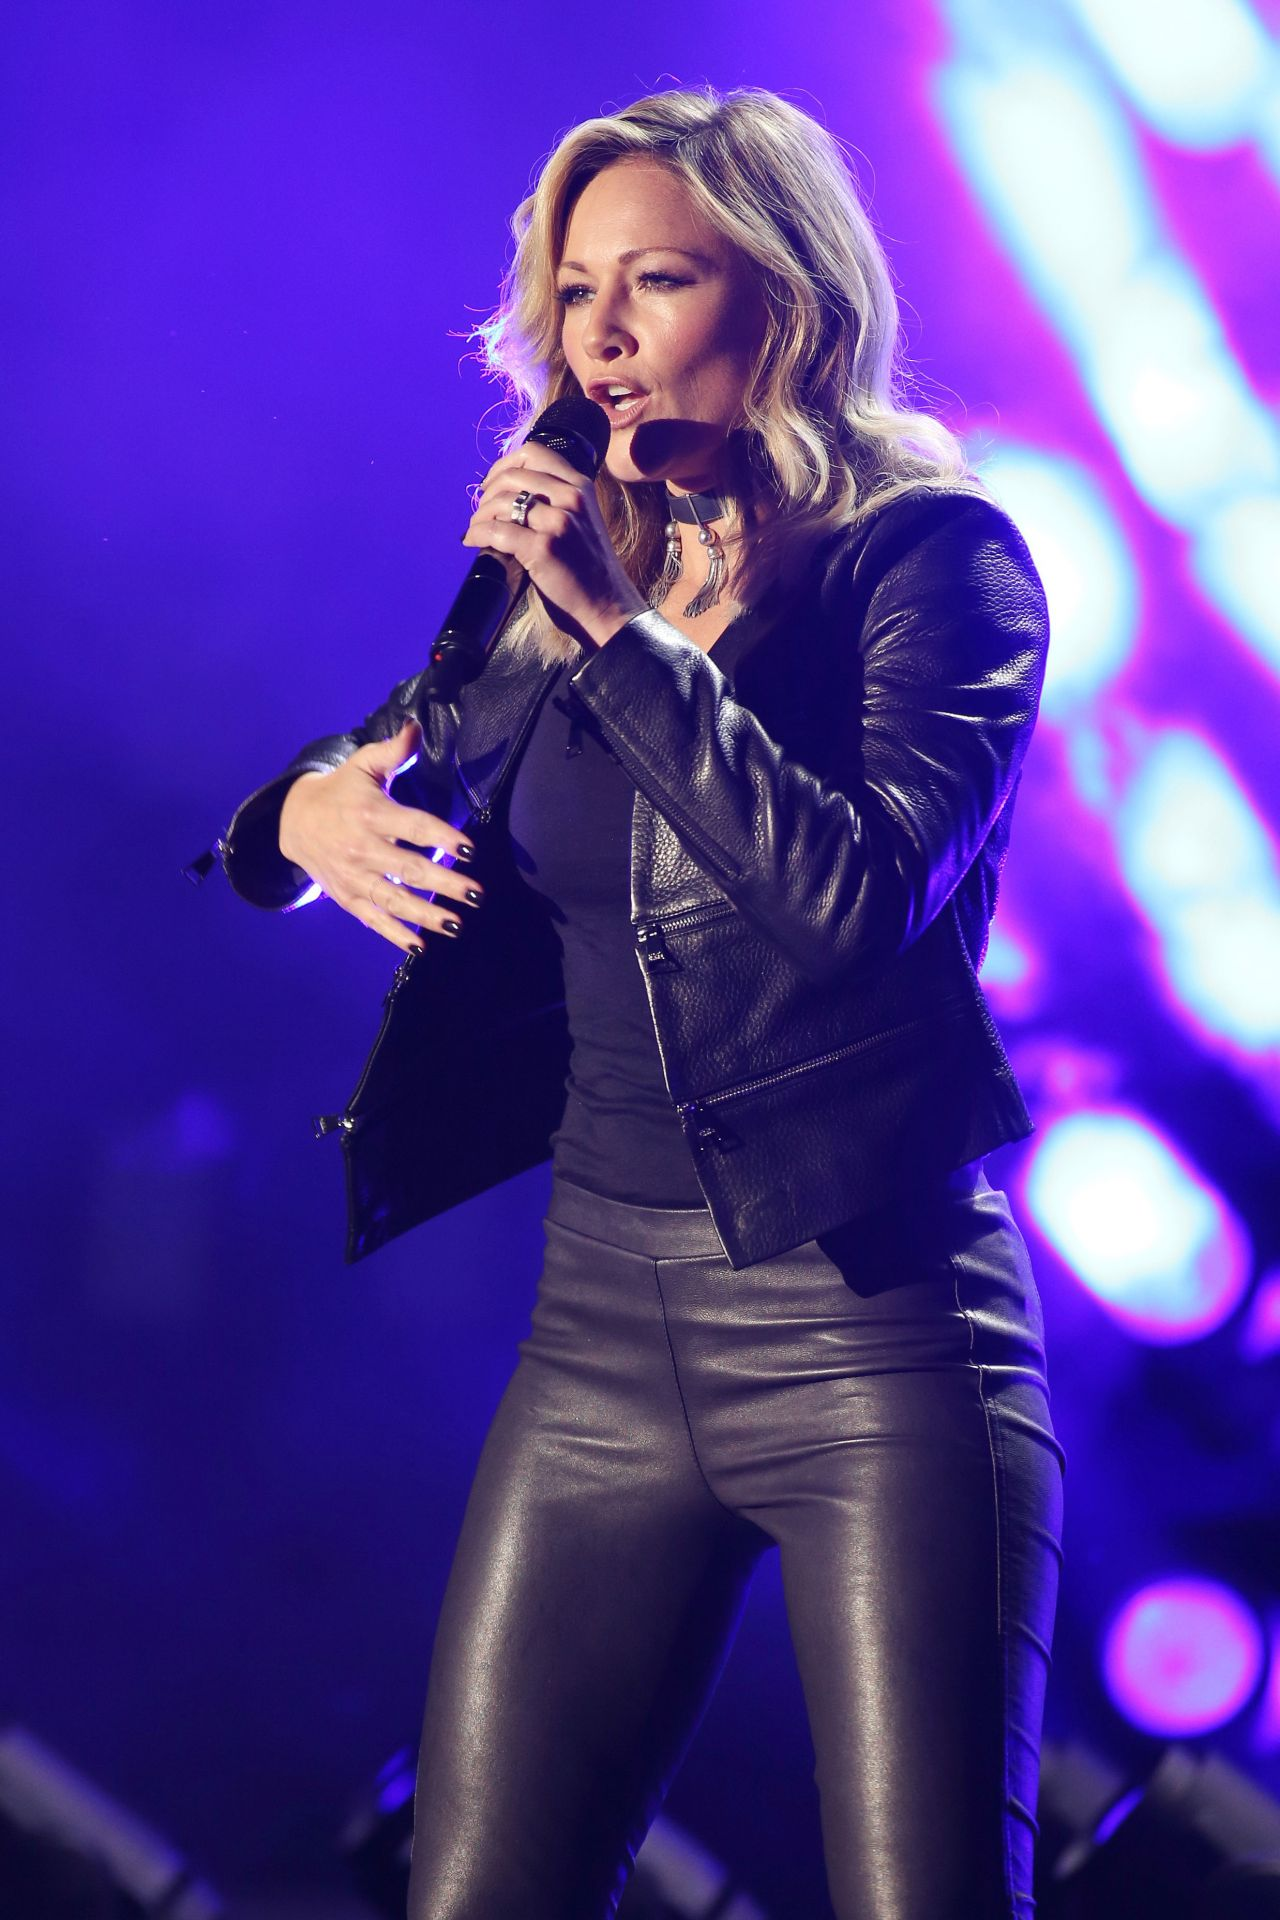 Helene Fischer Performs at Eurovision Song Contest Party in Hamburg     Helene Fischer Performs at Eurovision Song Contest Party in Hamburg  05 13 2017